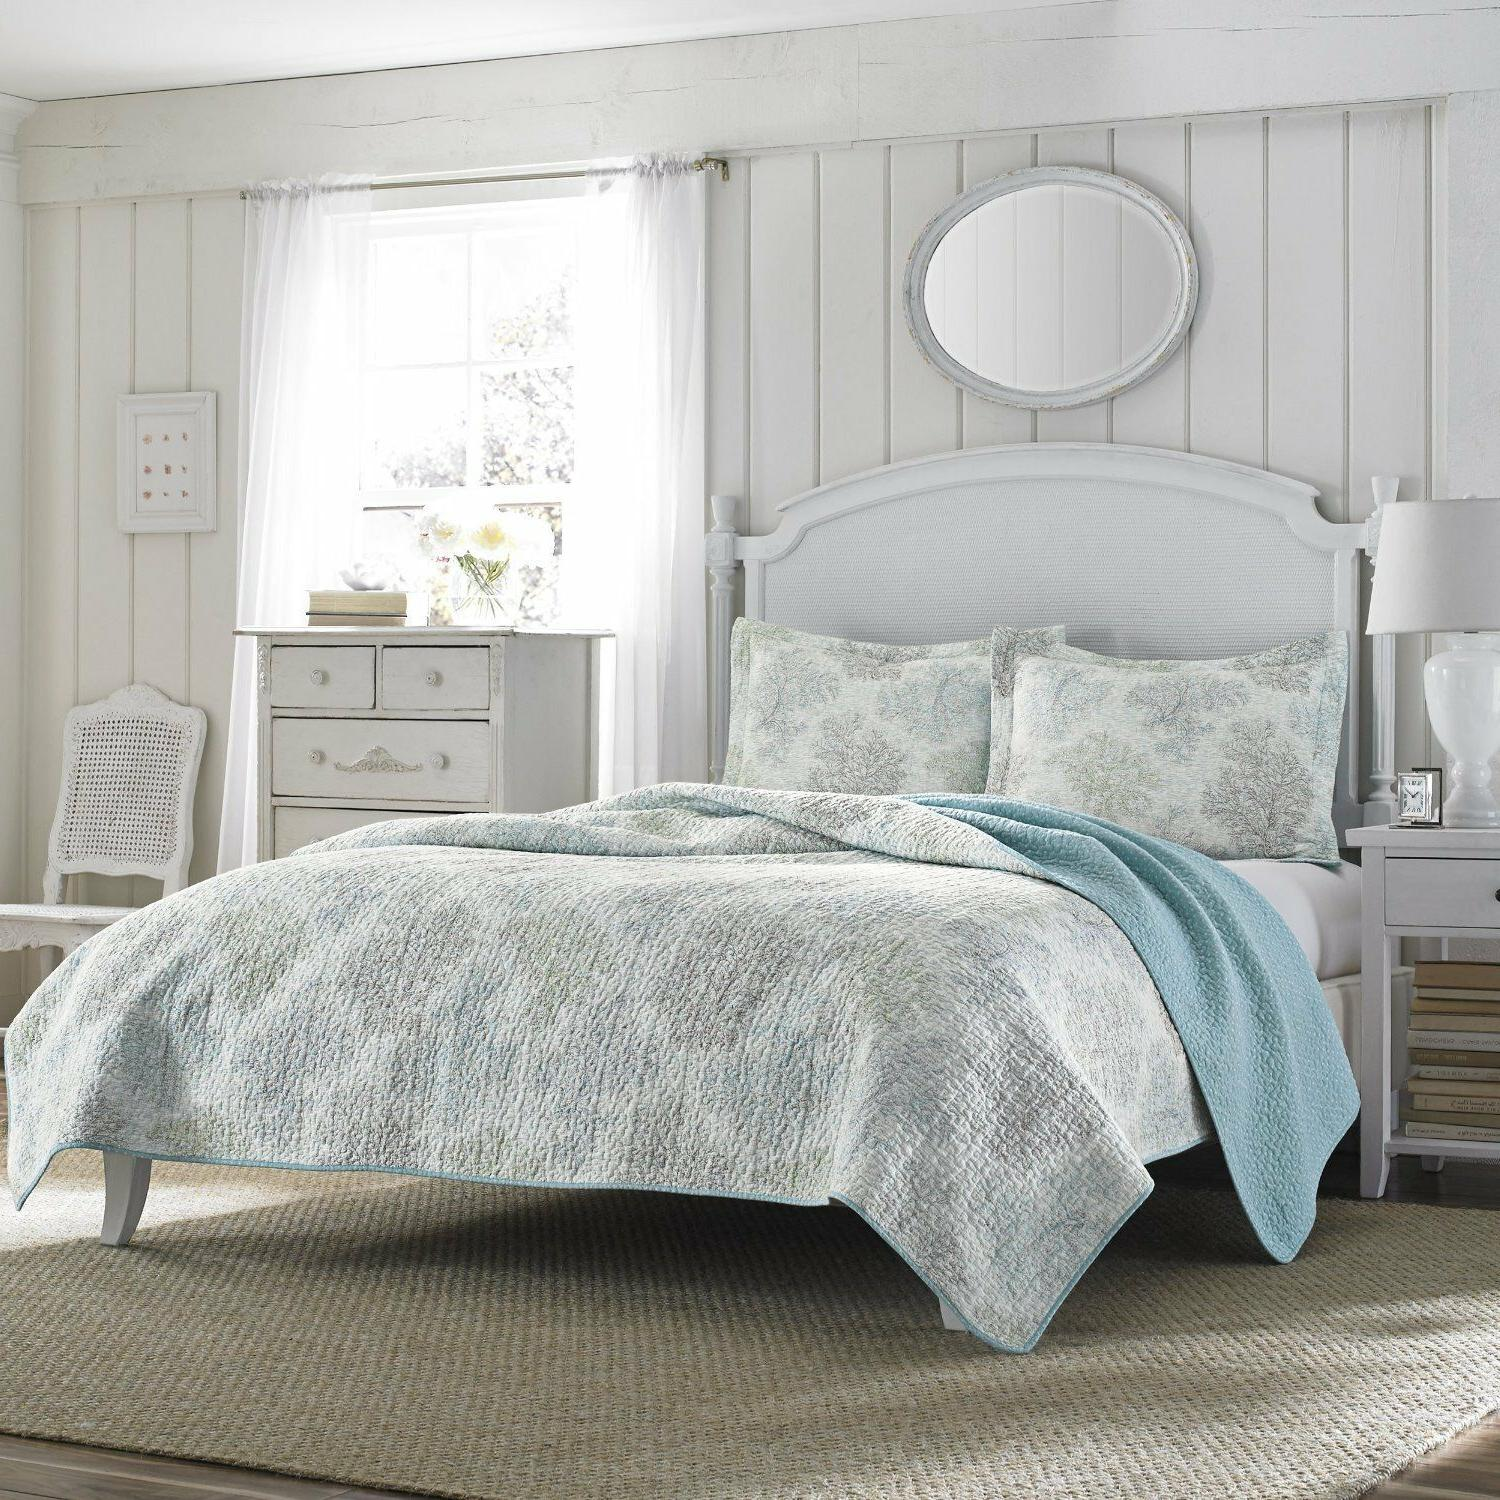 * NEW * Laura Ashley Saltwater Reversible Quilt Set